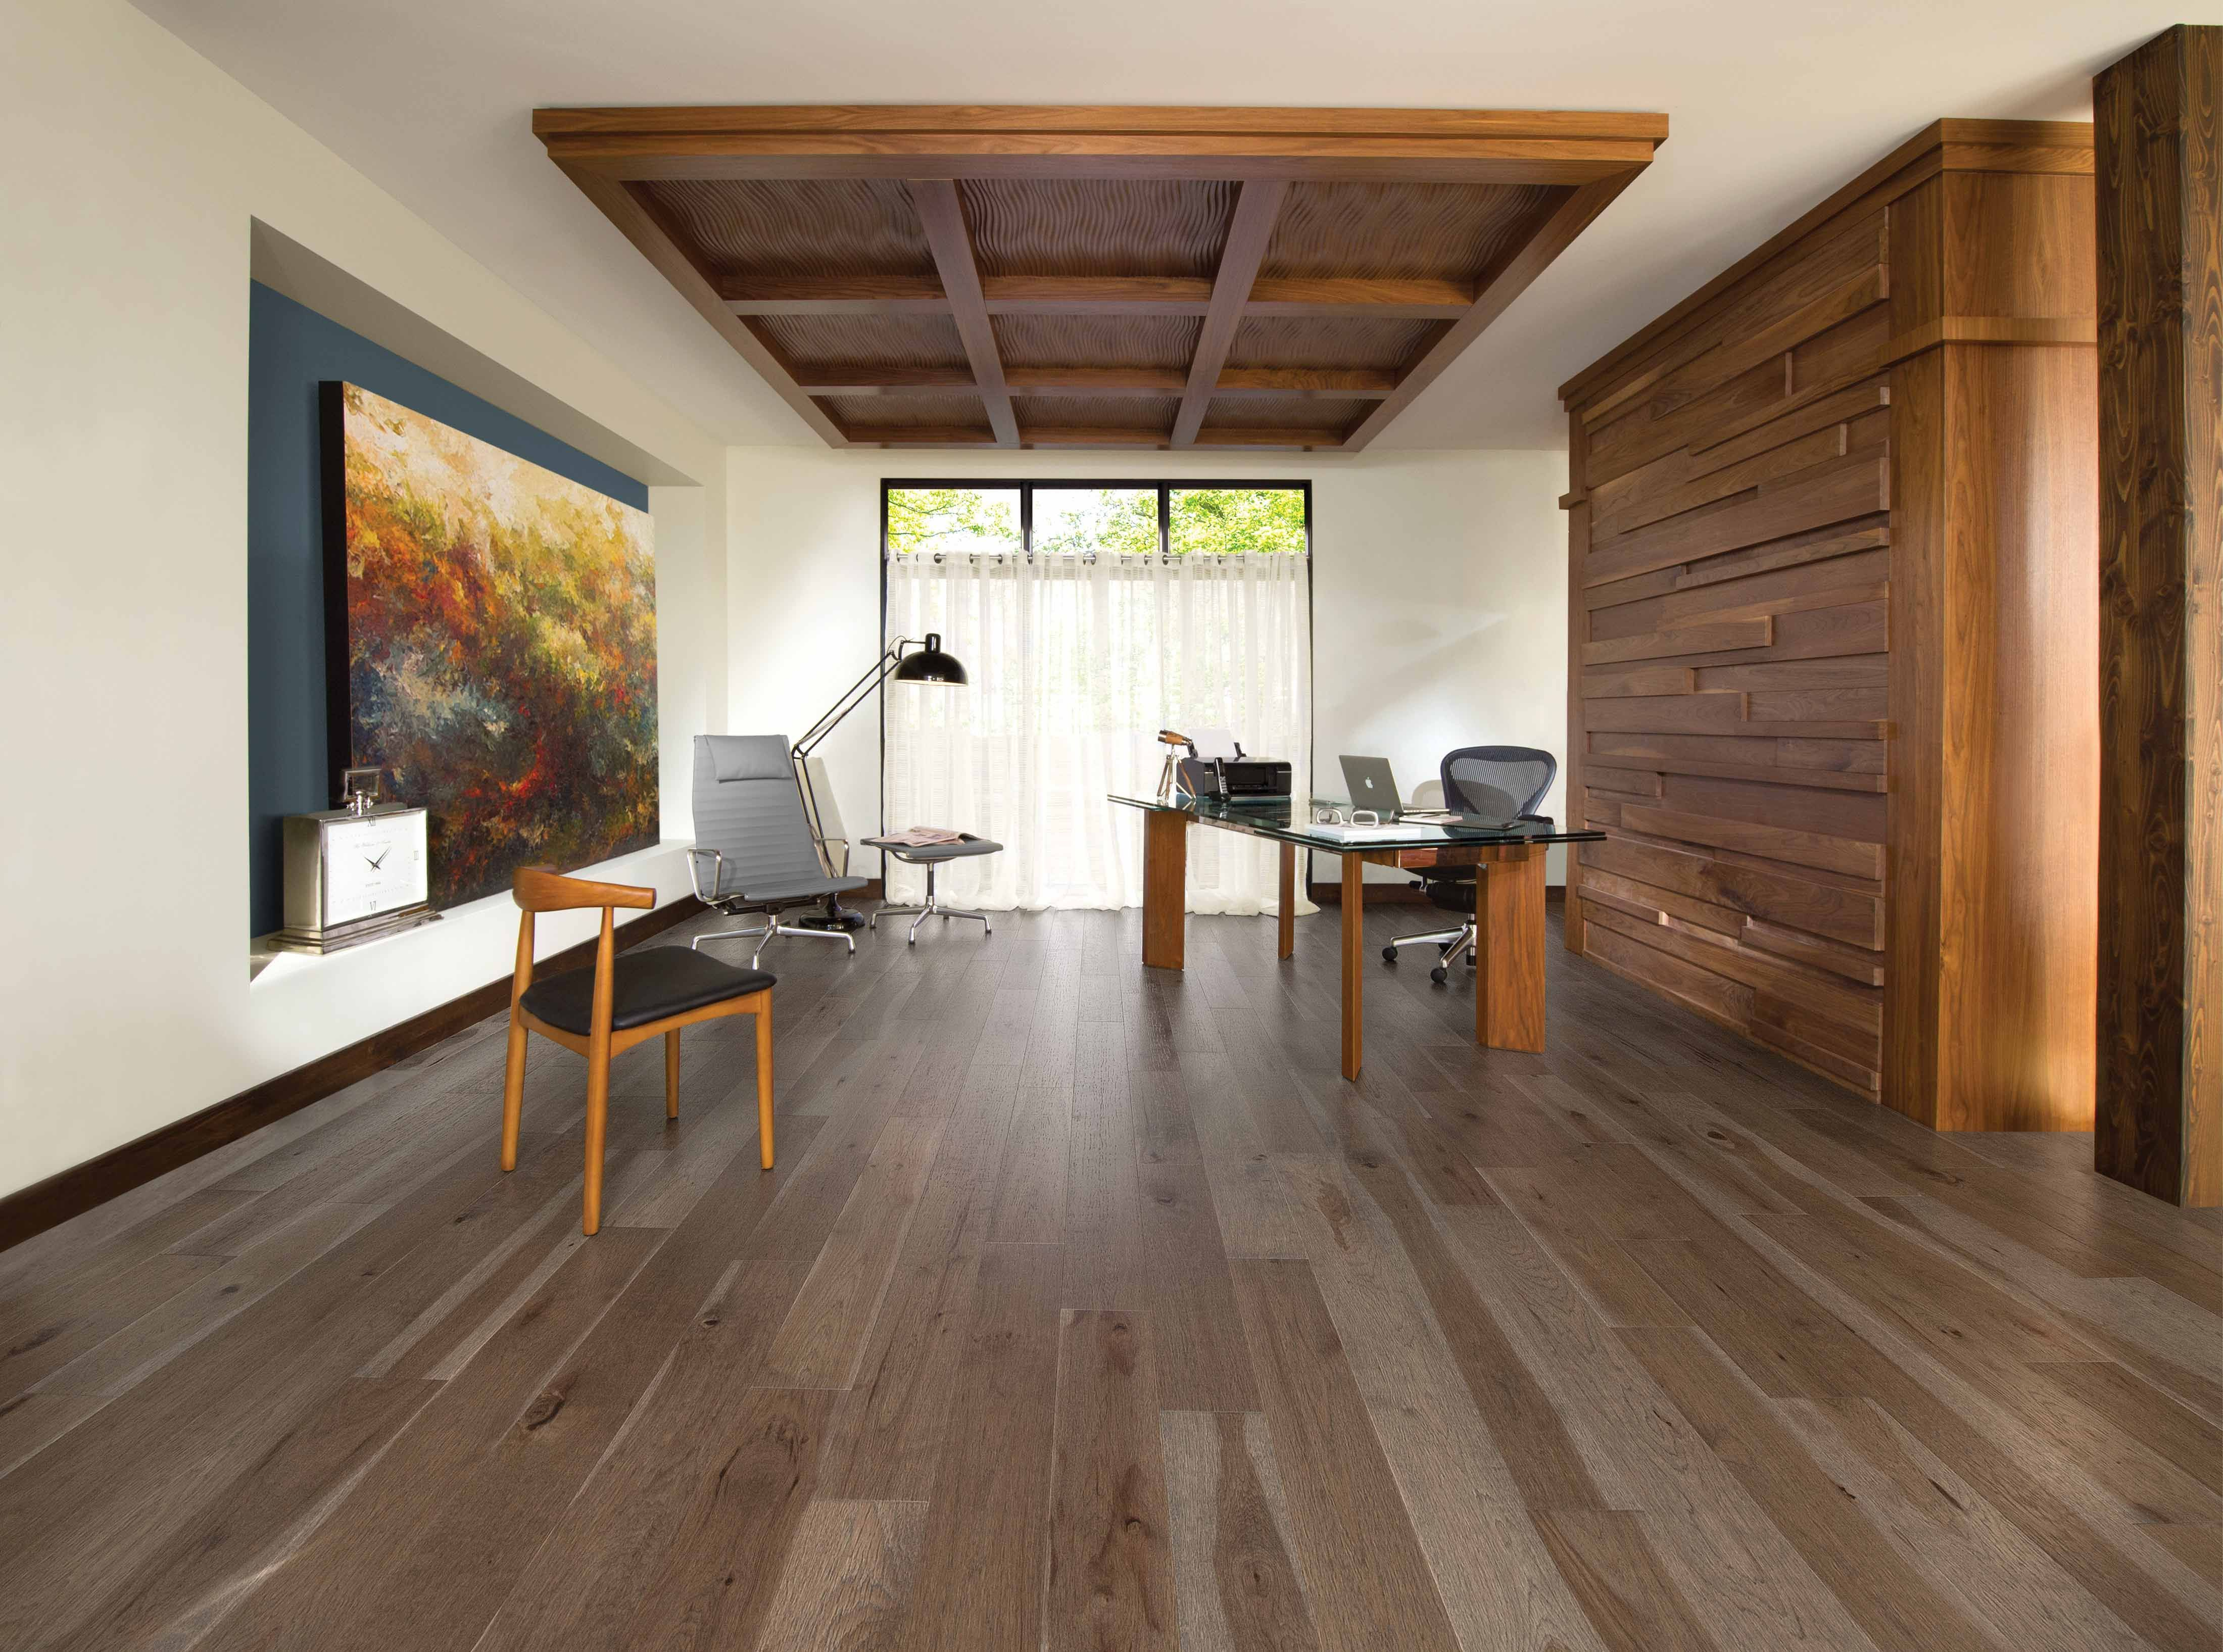 54 best images about Mirage Floors on Pinterest  Red oak tree